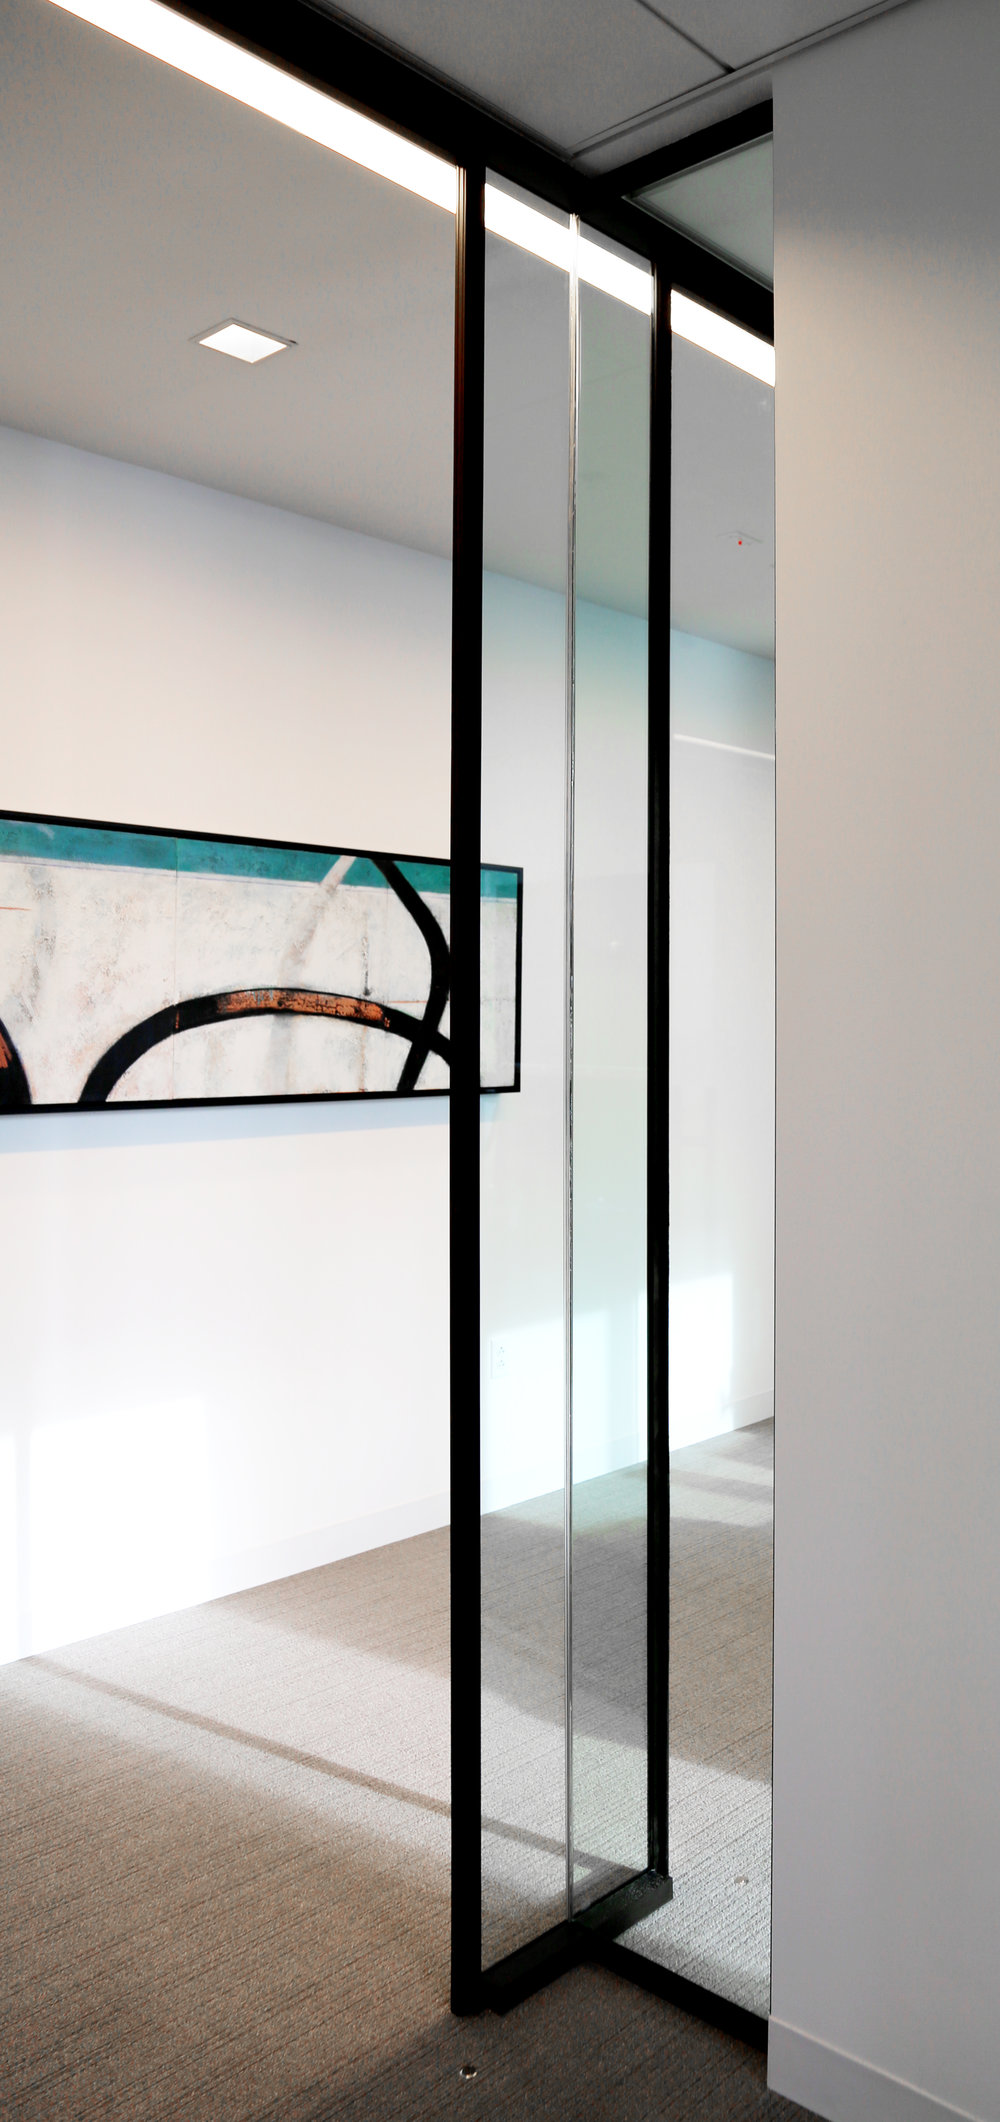 Modernus Aluminum Framed System Glass Return - Spaceworks AI.jpg